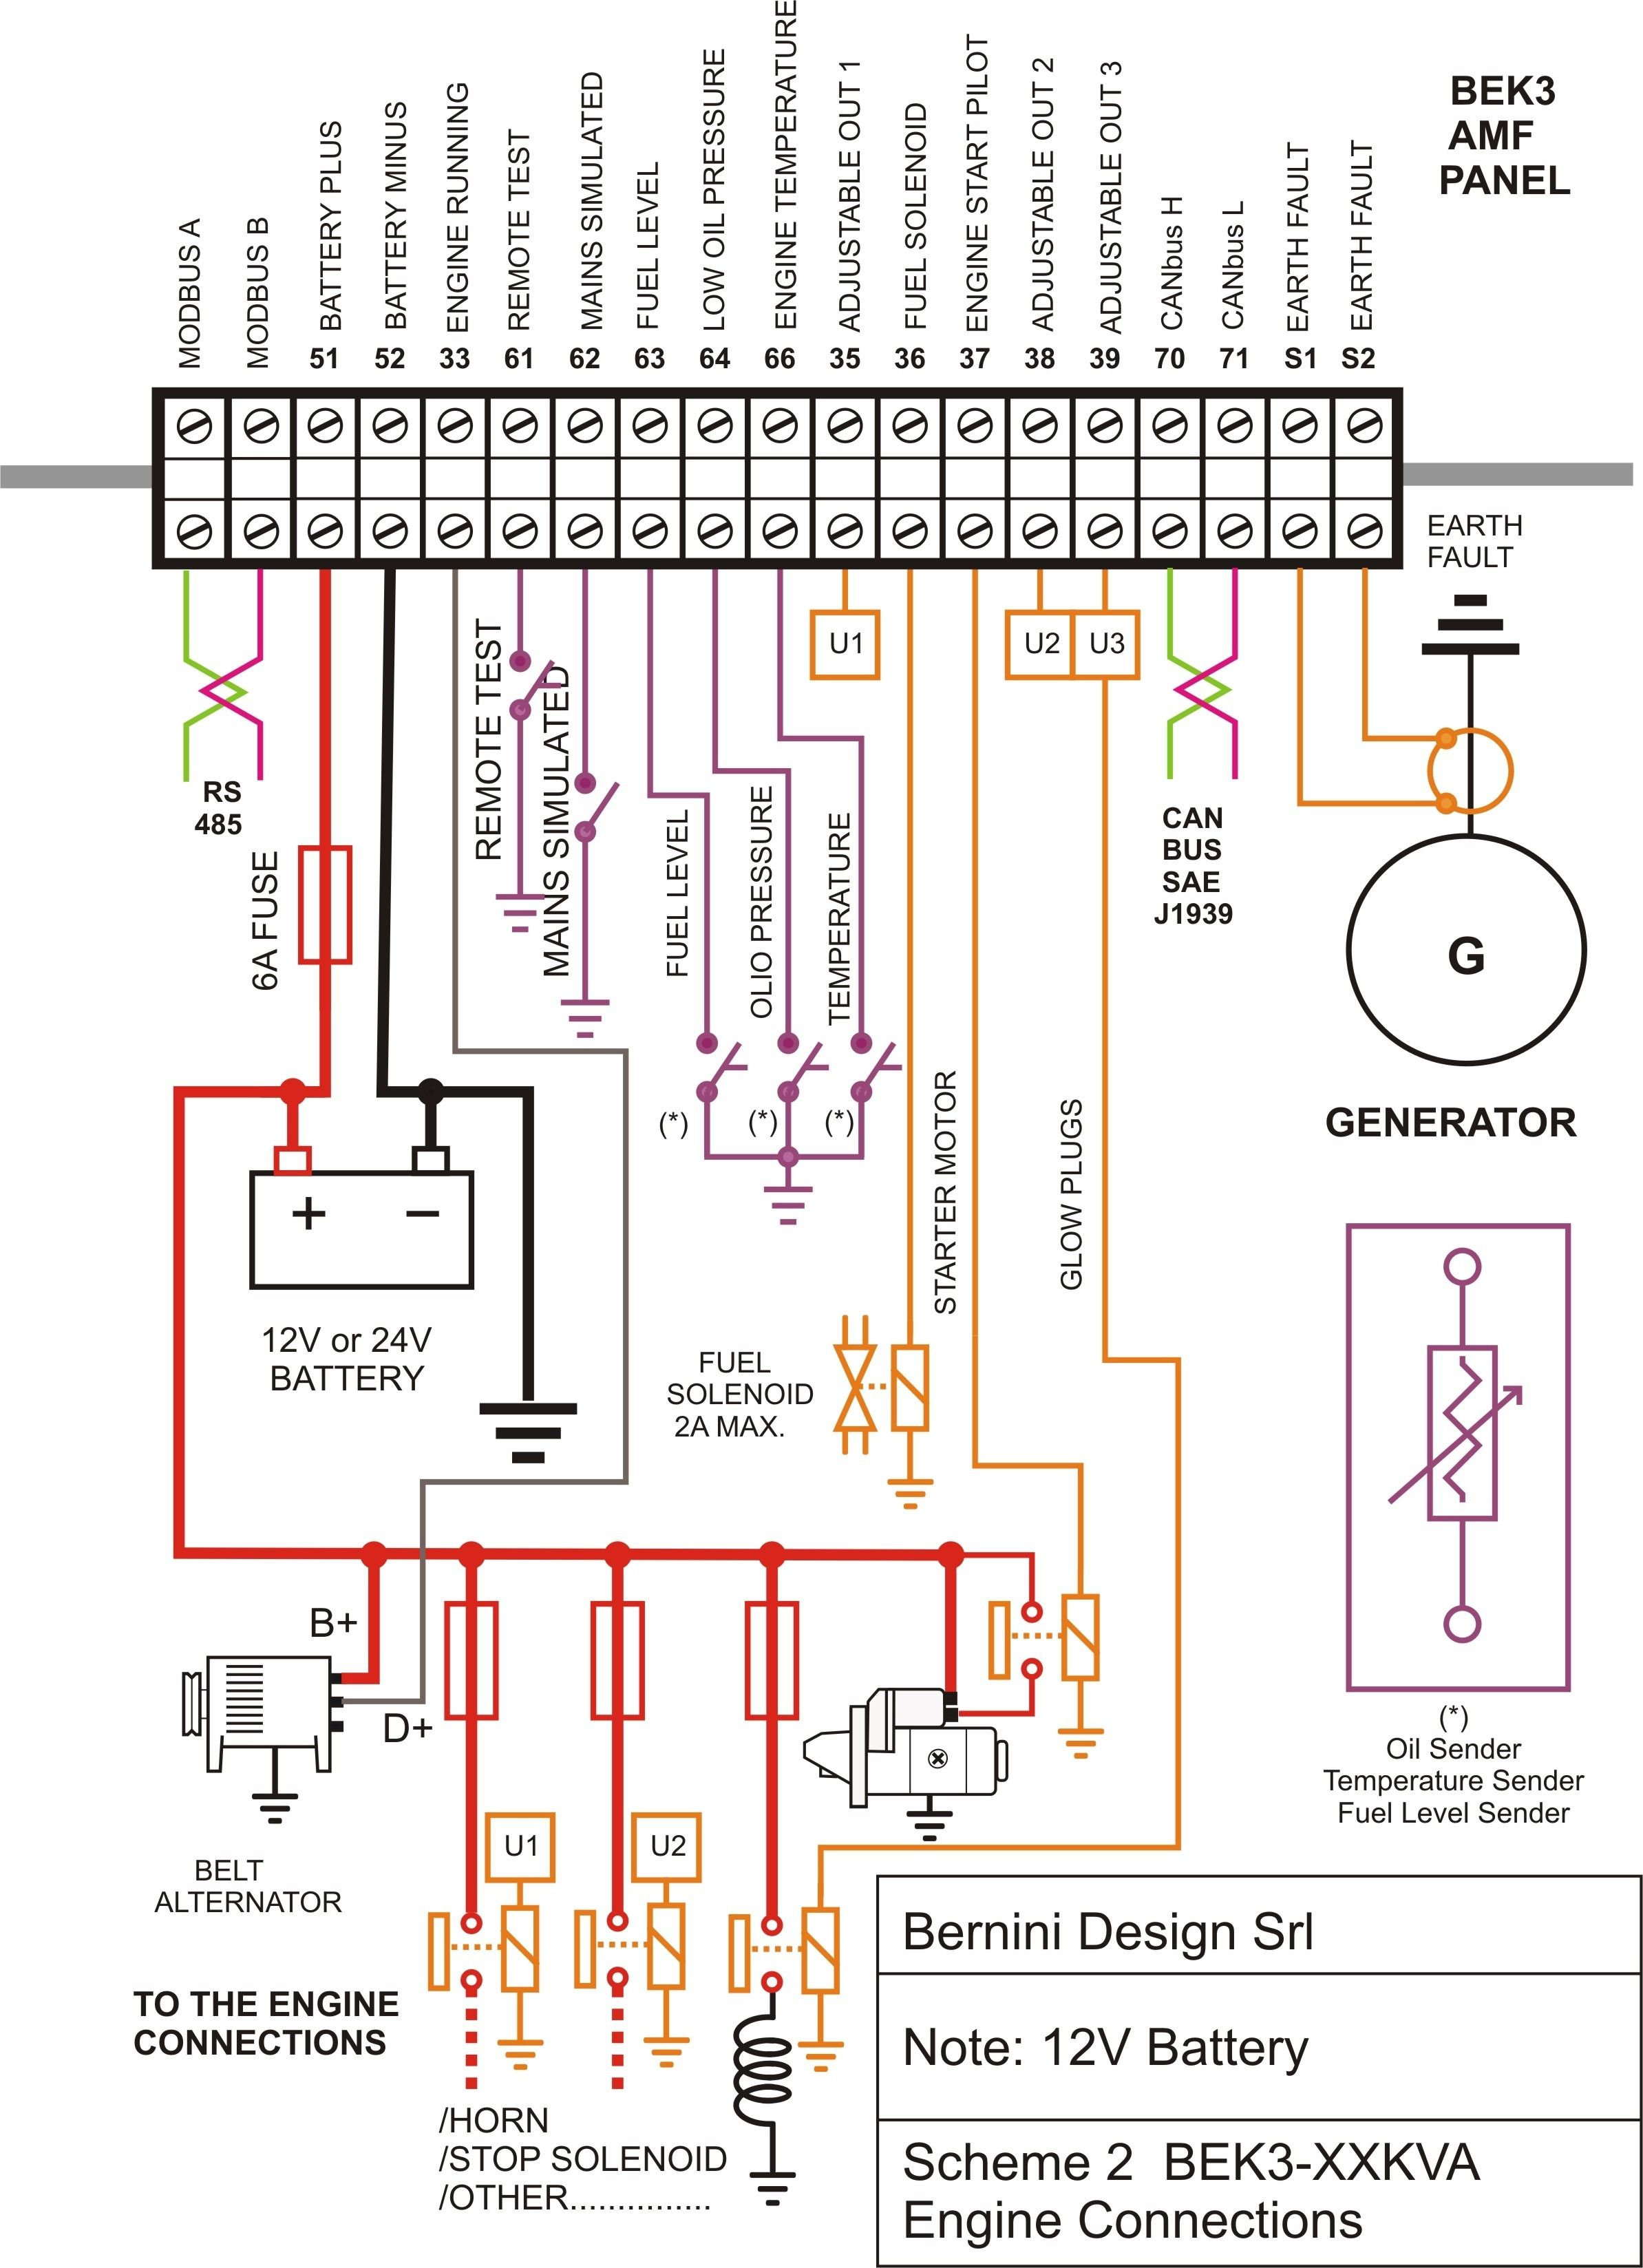 Basic Electrical Wiring Diagram Pdf | WiringDiagram